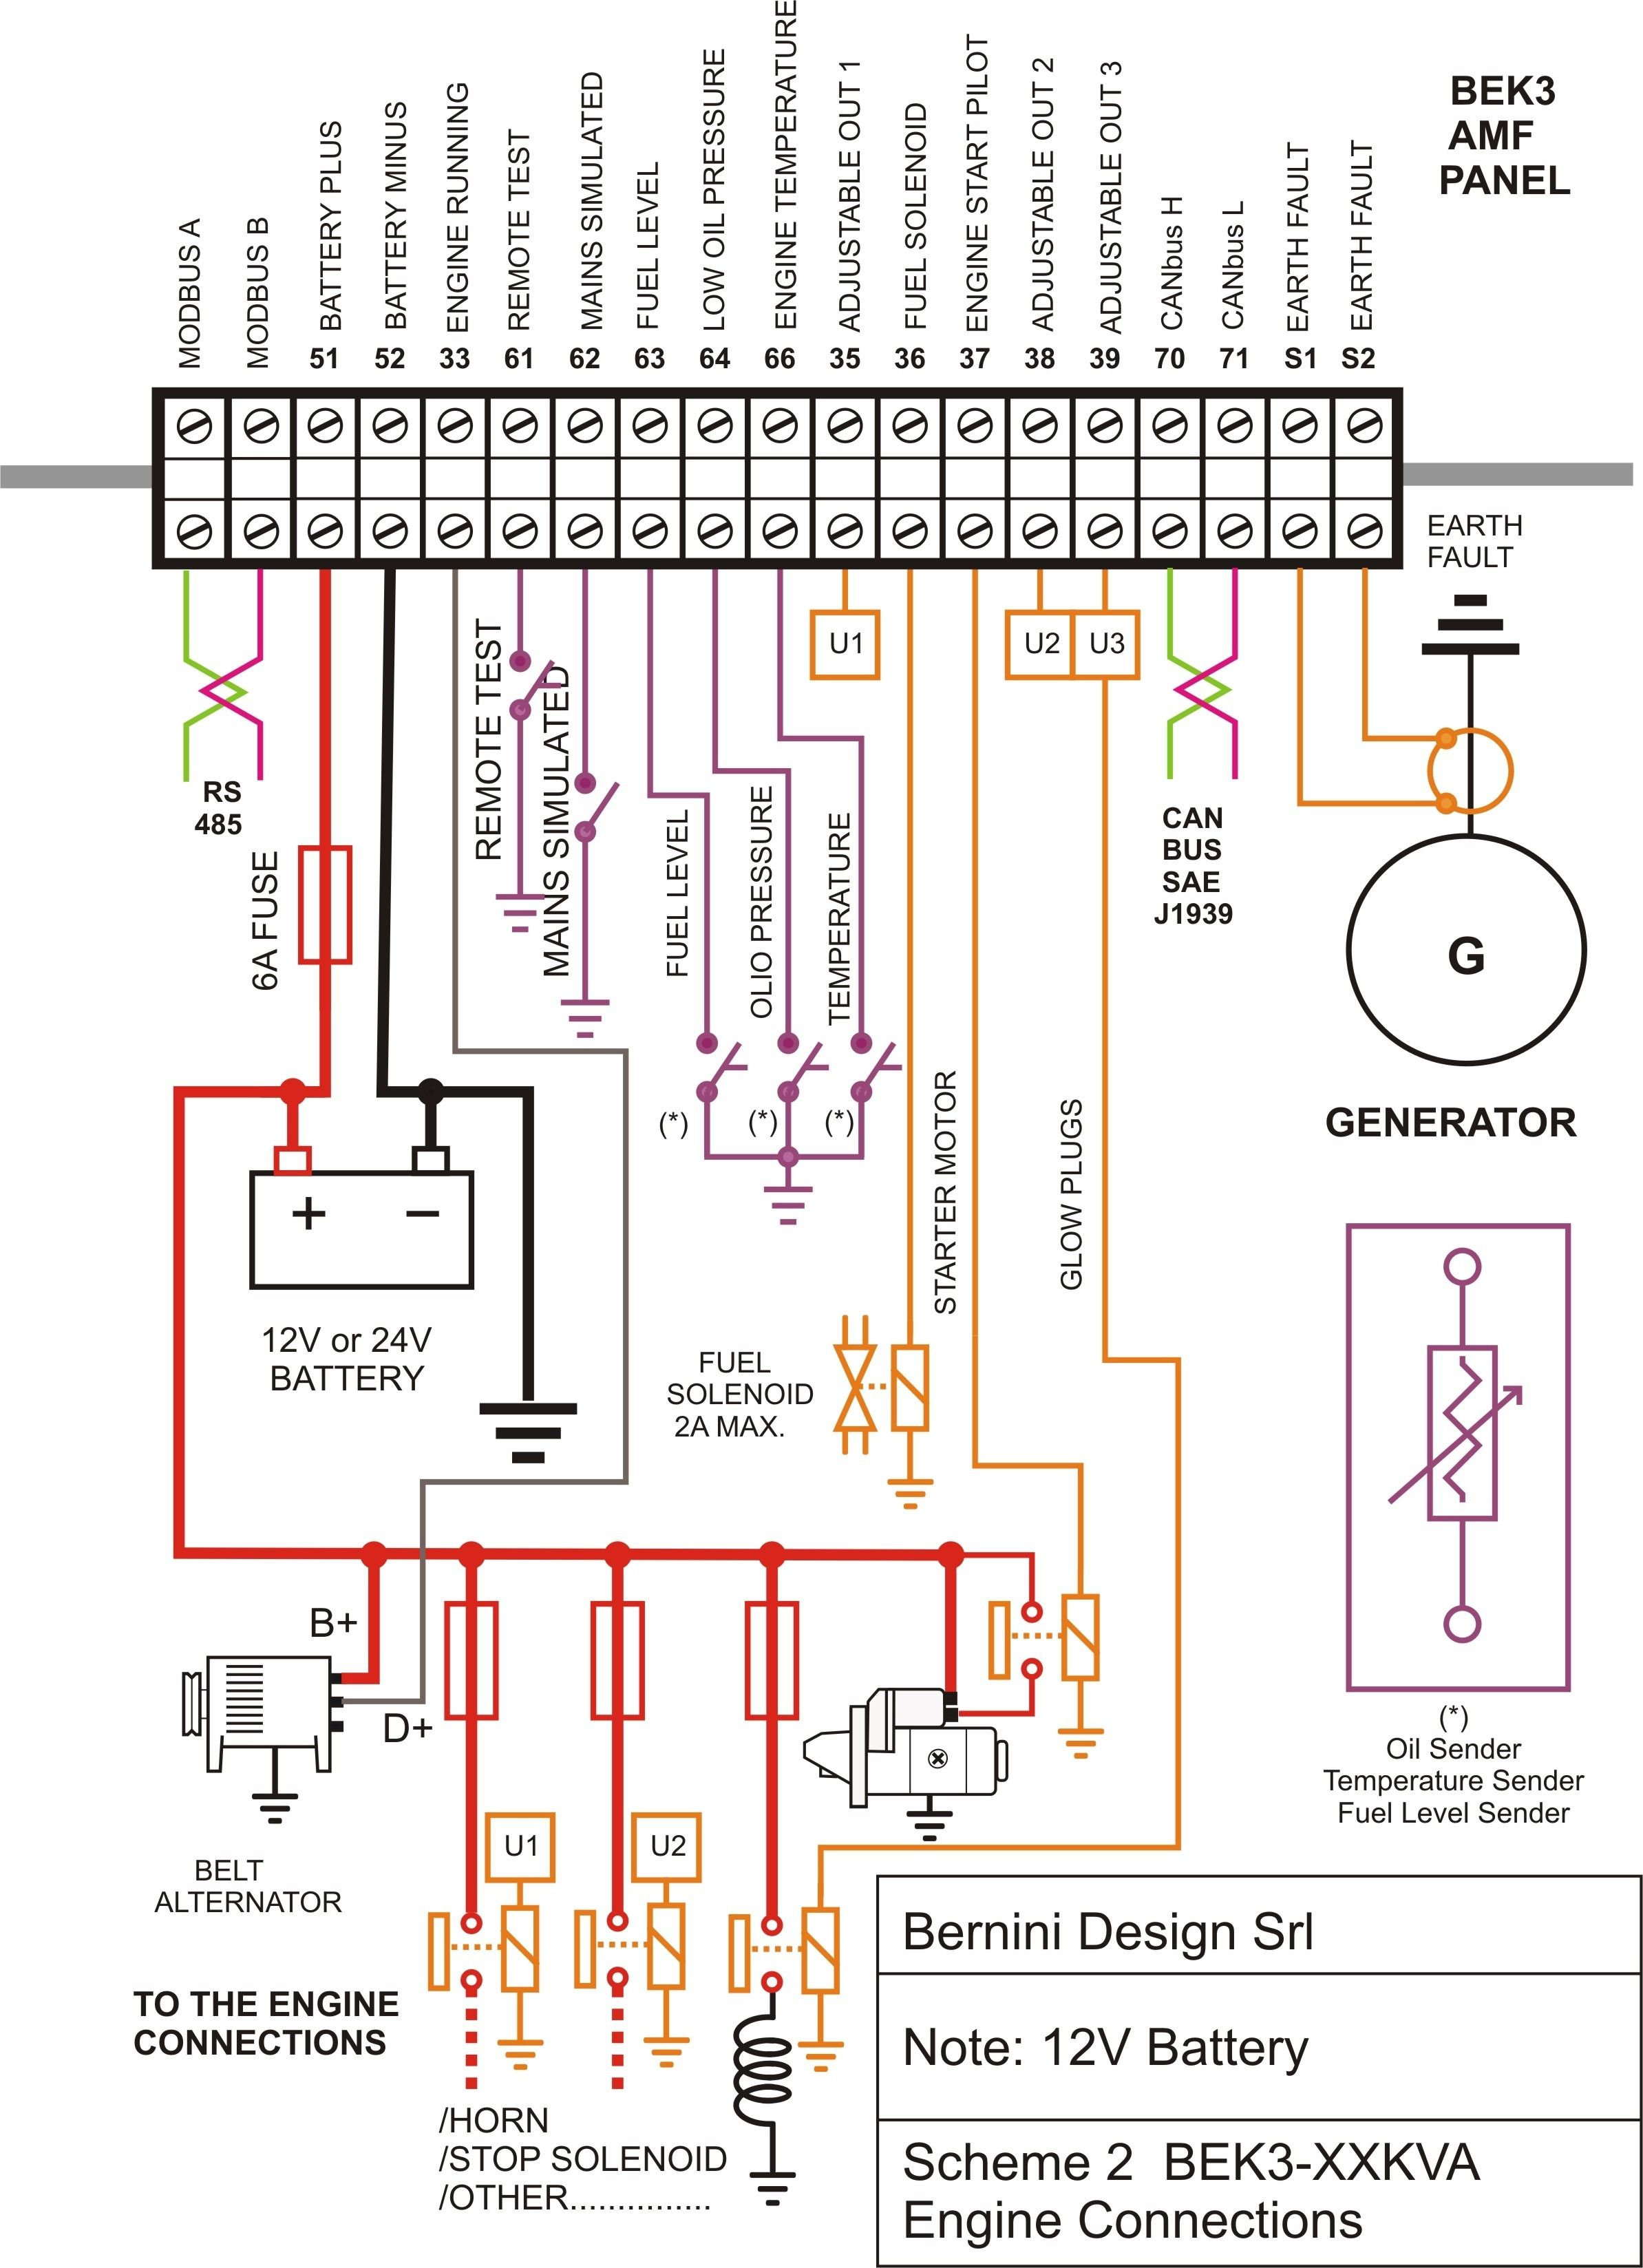 Basic Electrical Wiring Diagram Pdf | WiringDiagram